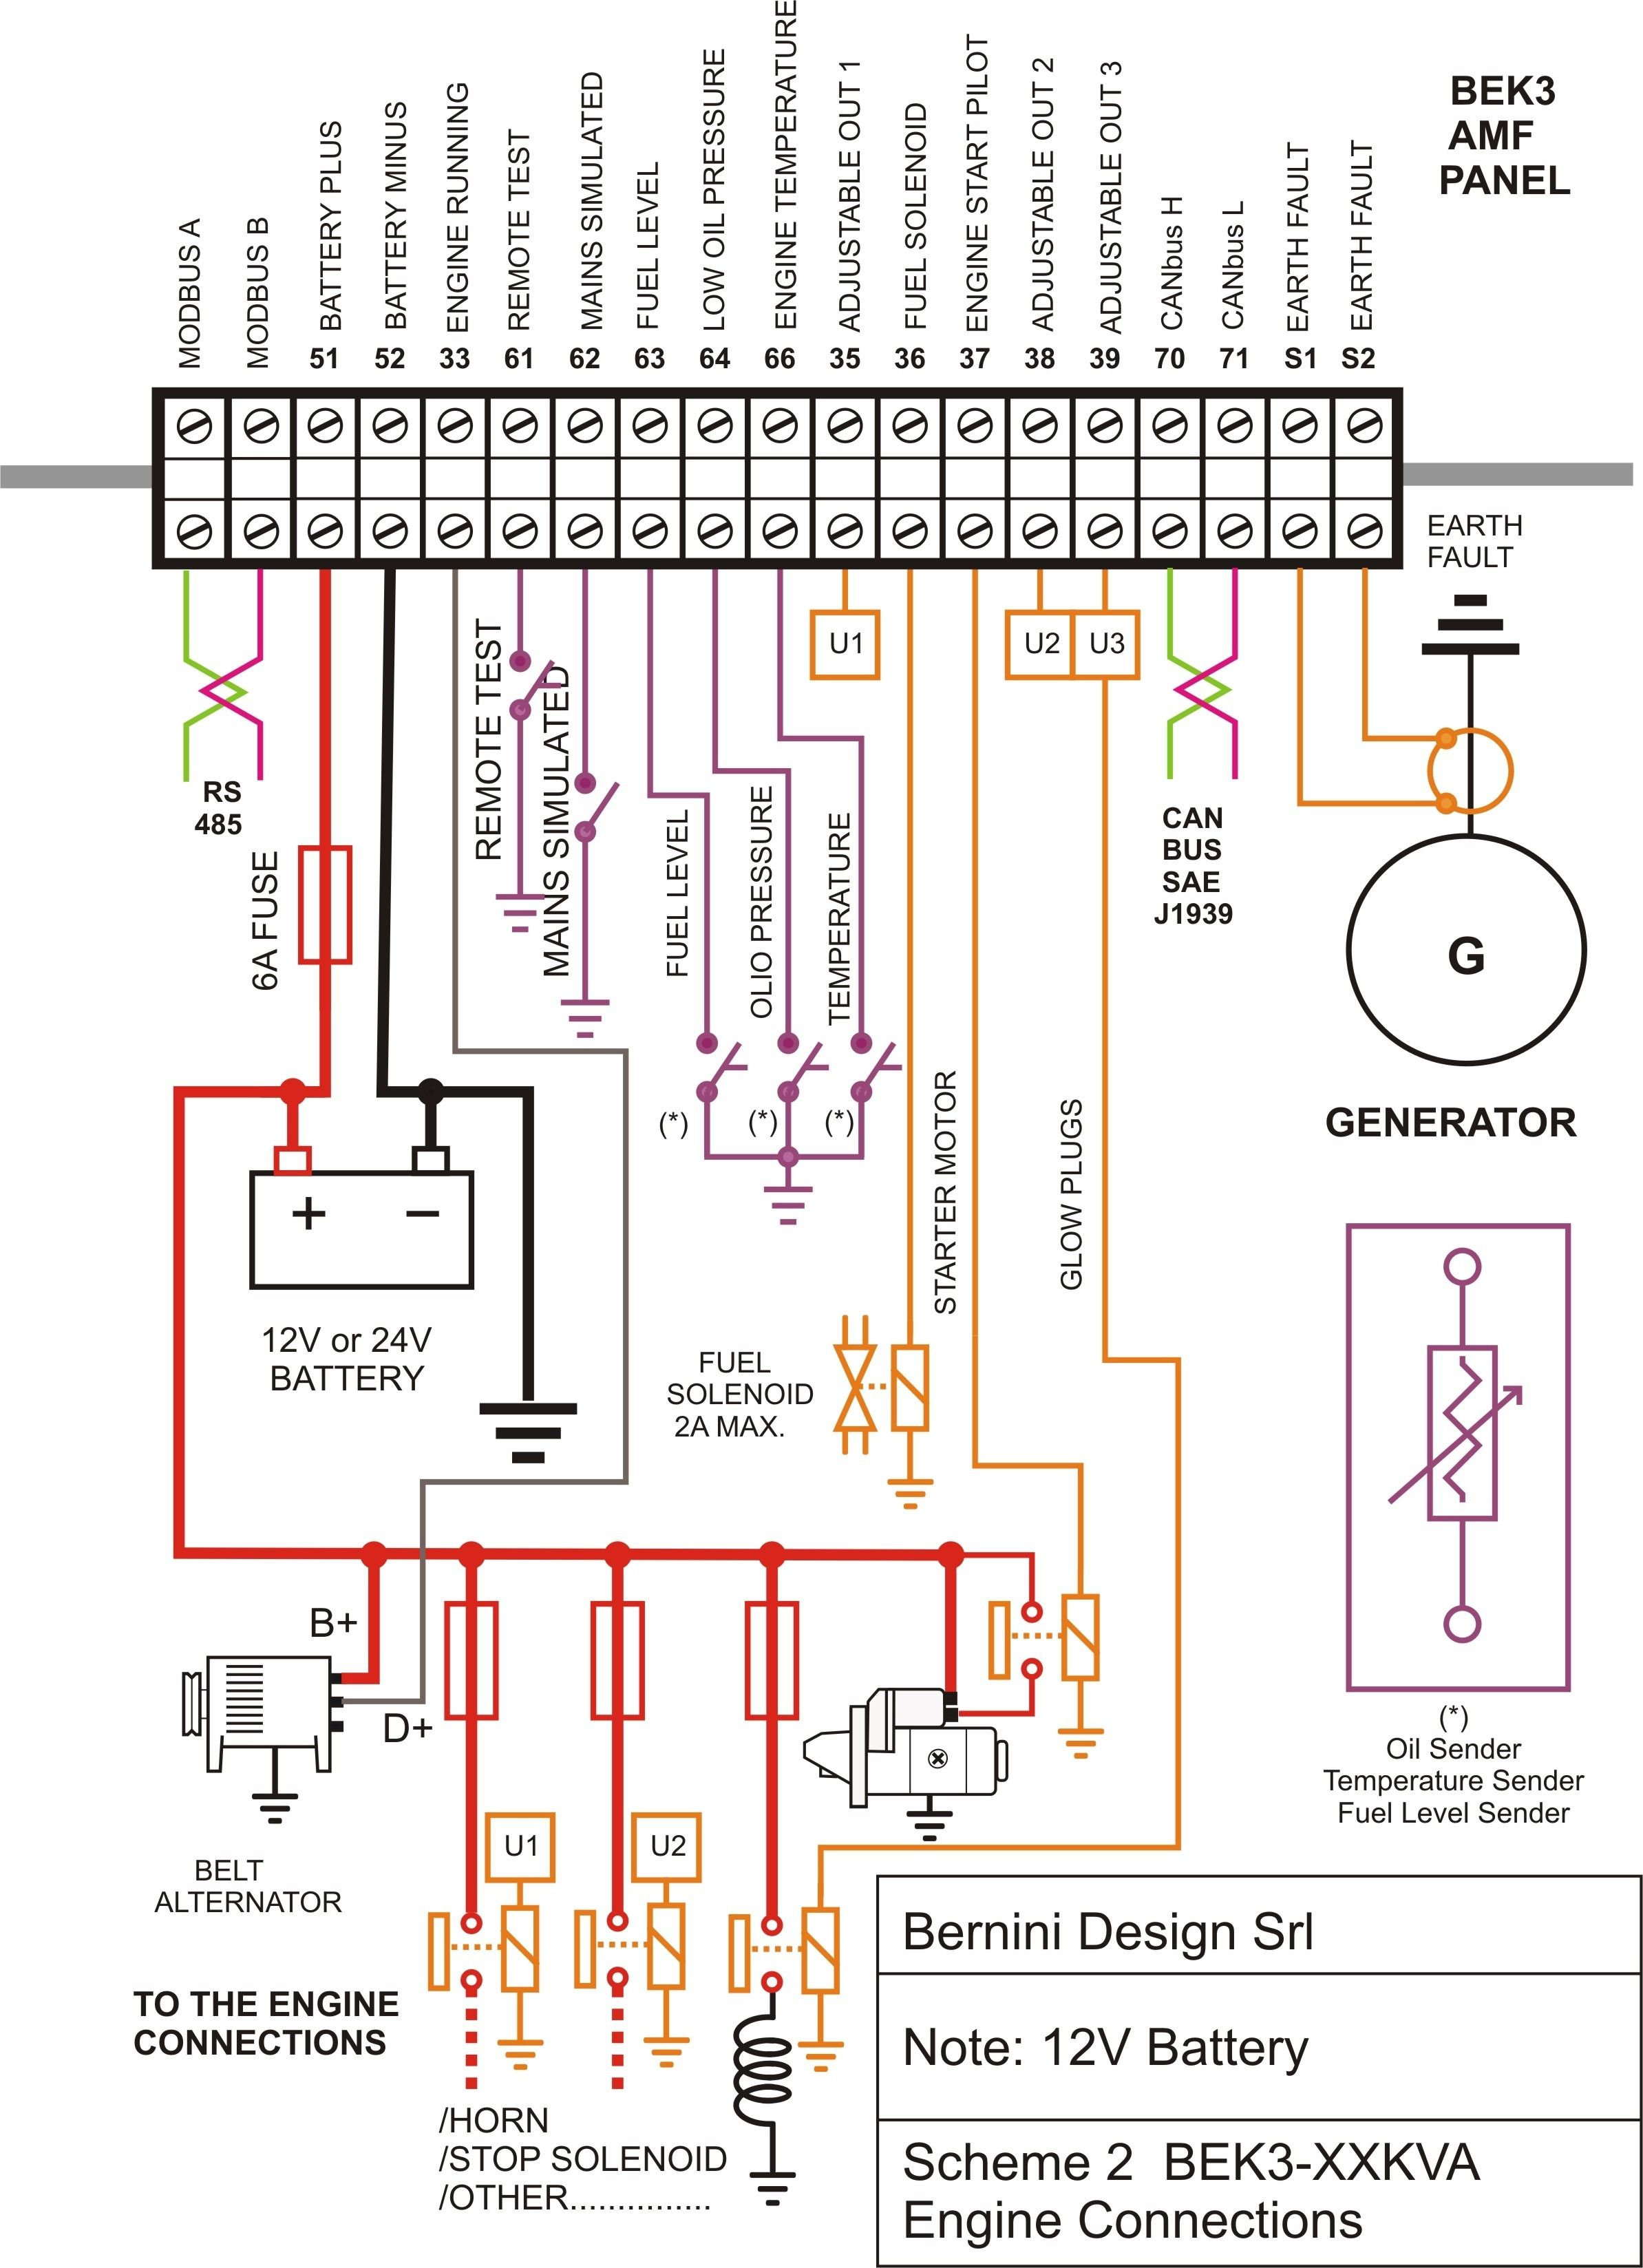 Basic Electrical Wiring Diagram Pdf | WiringDiagram